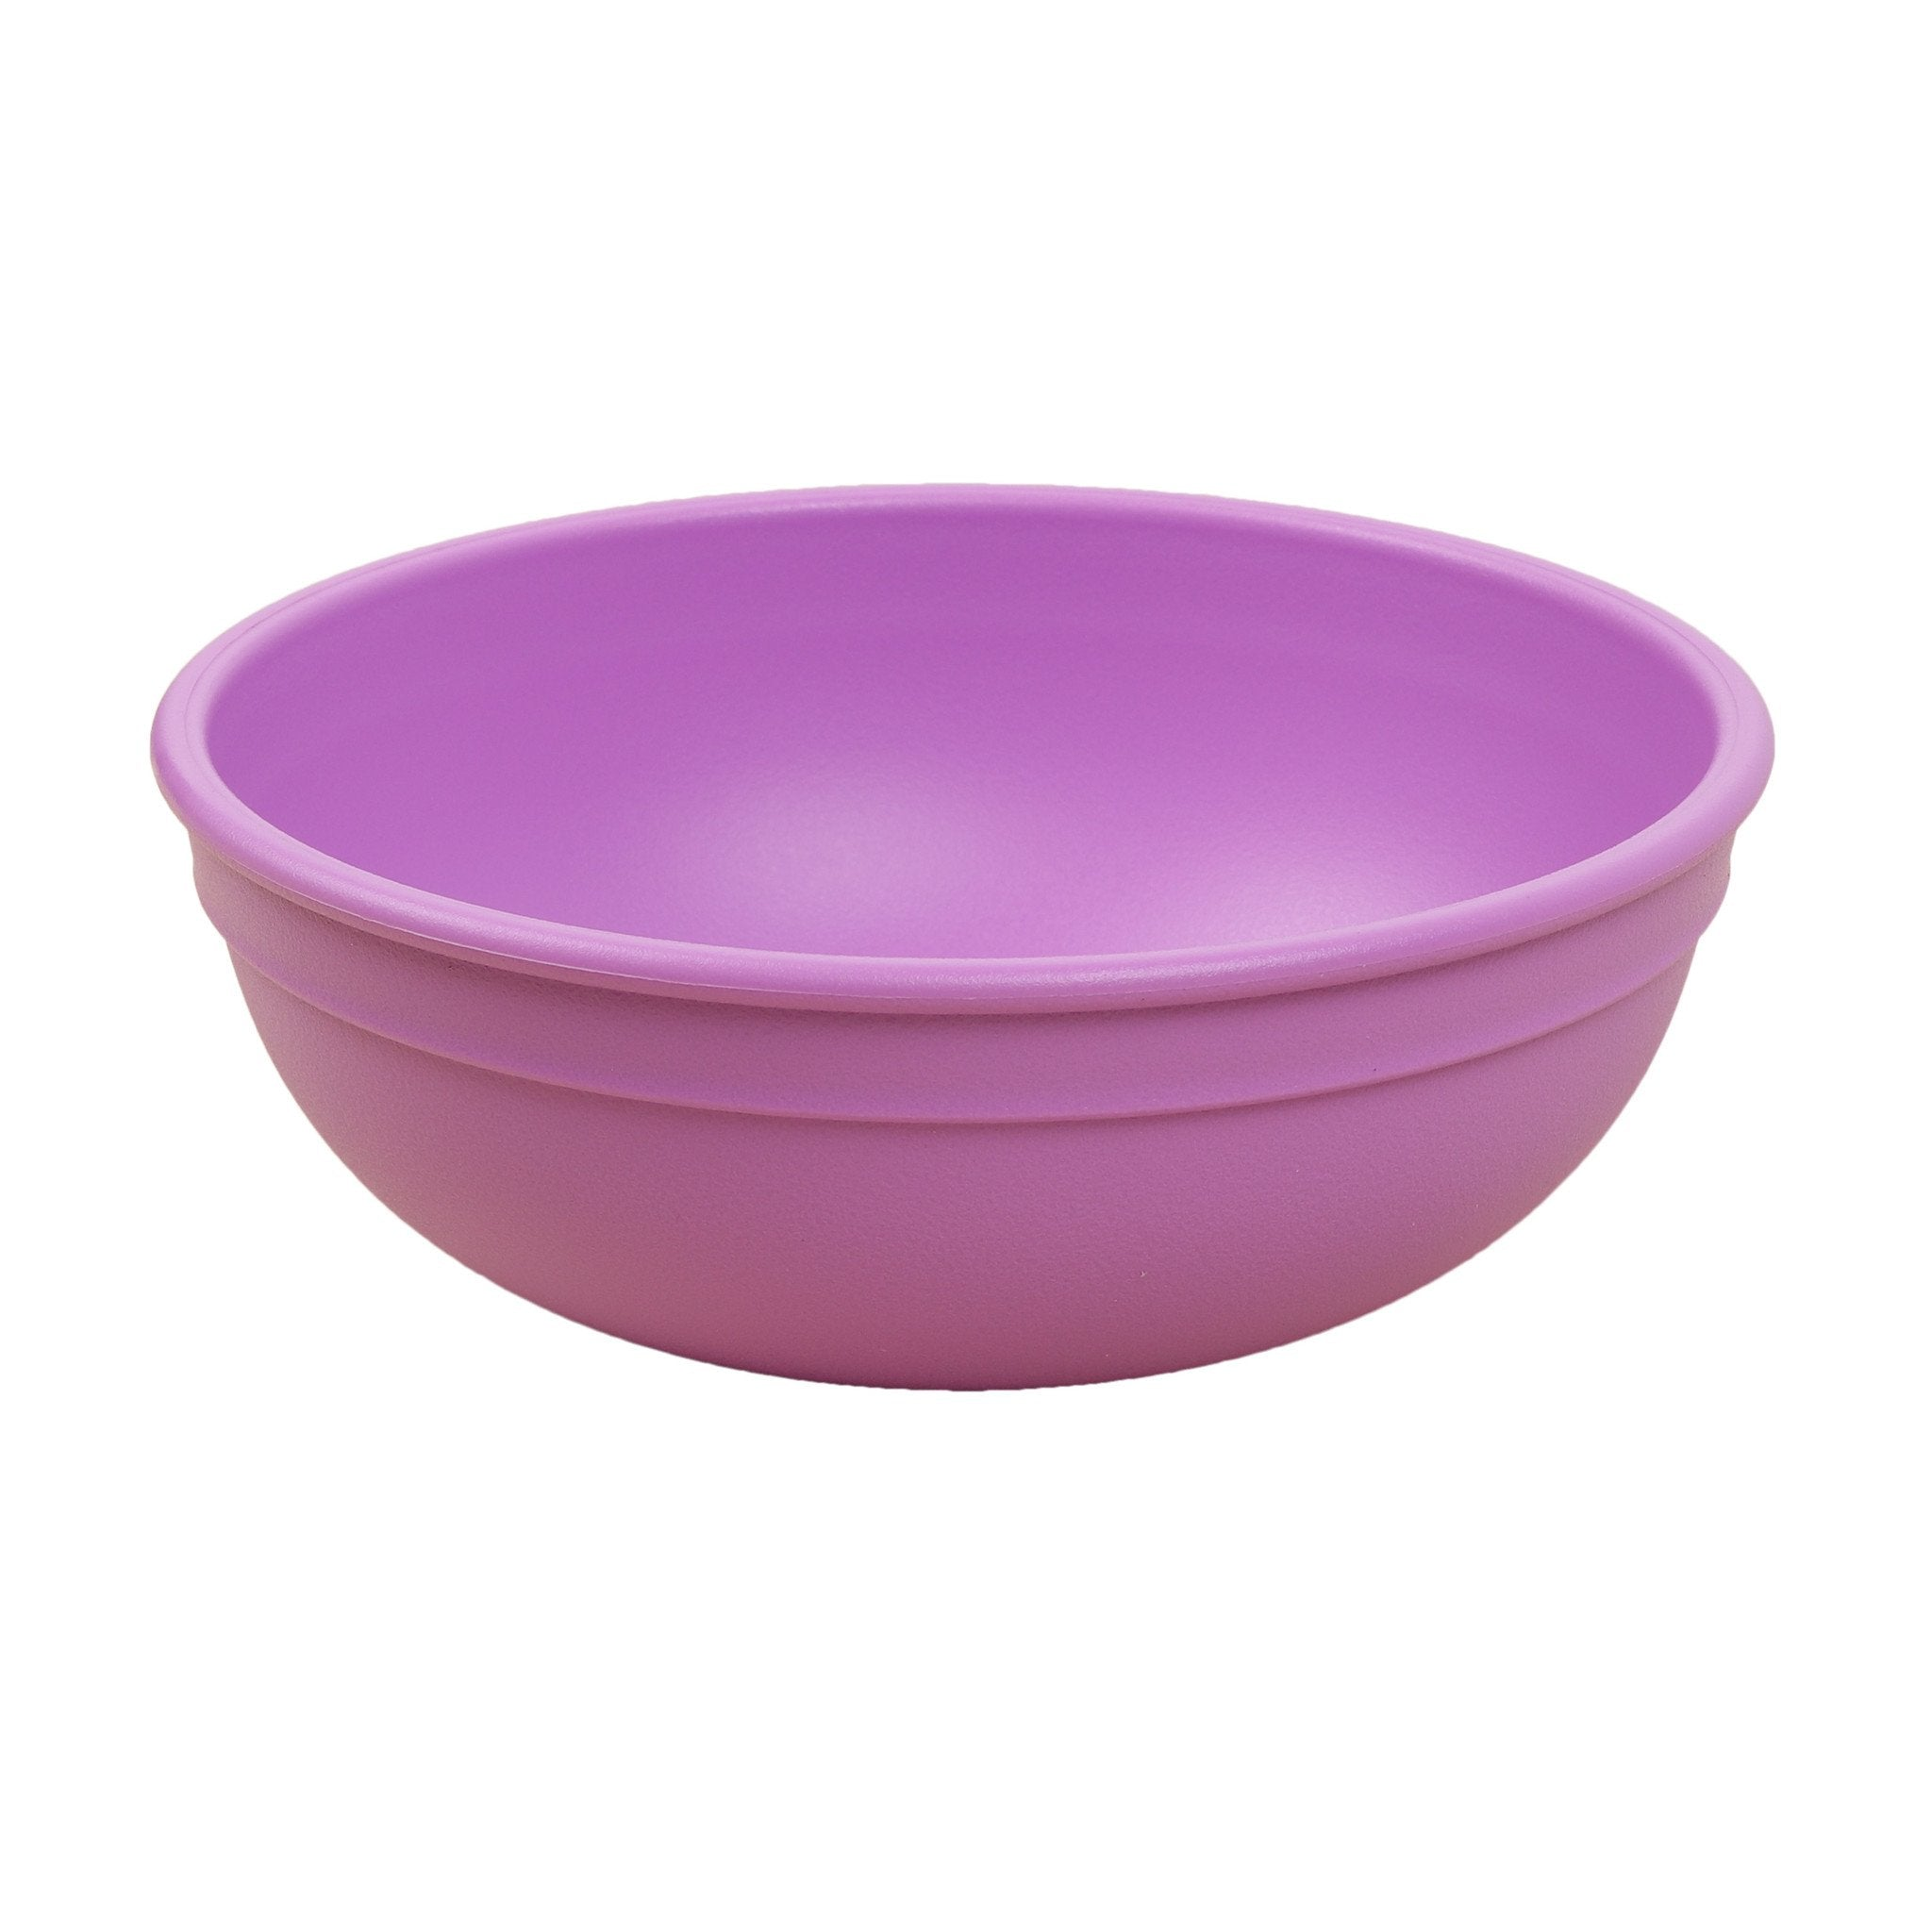 Replay Large Bowl Replay Dinnerware Purple at Little Earth Nest Eco Shop